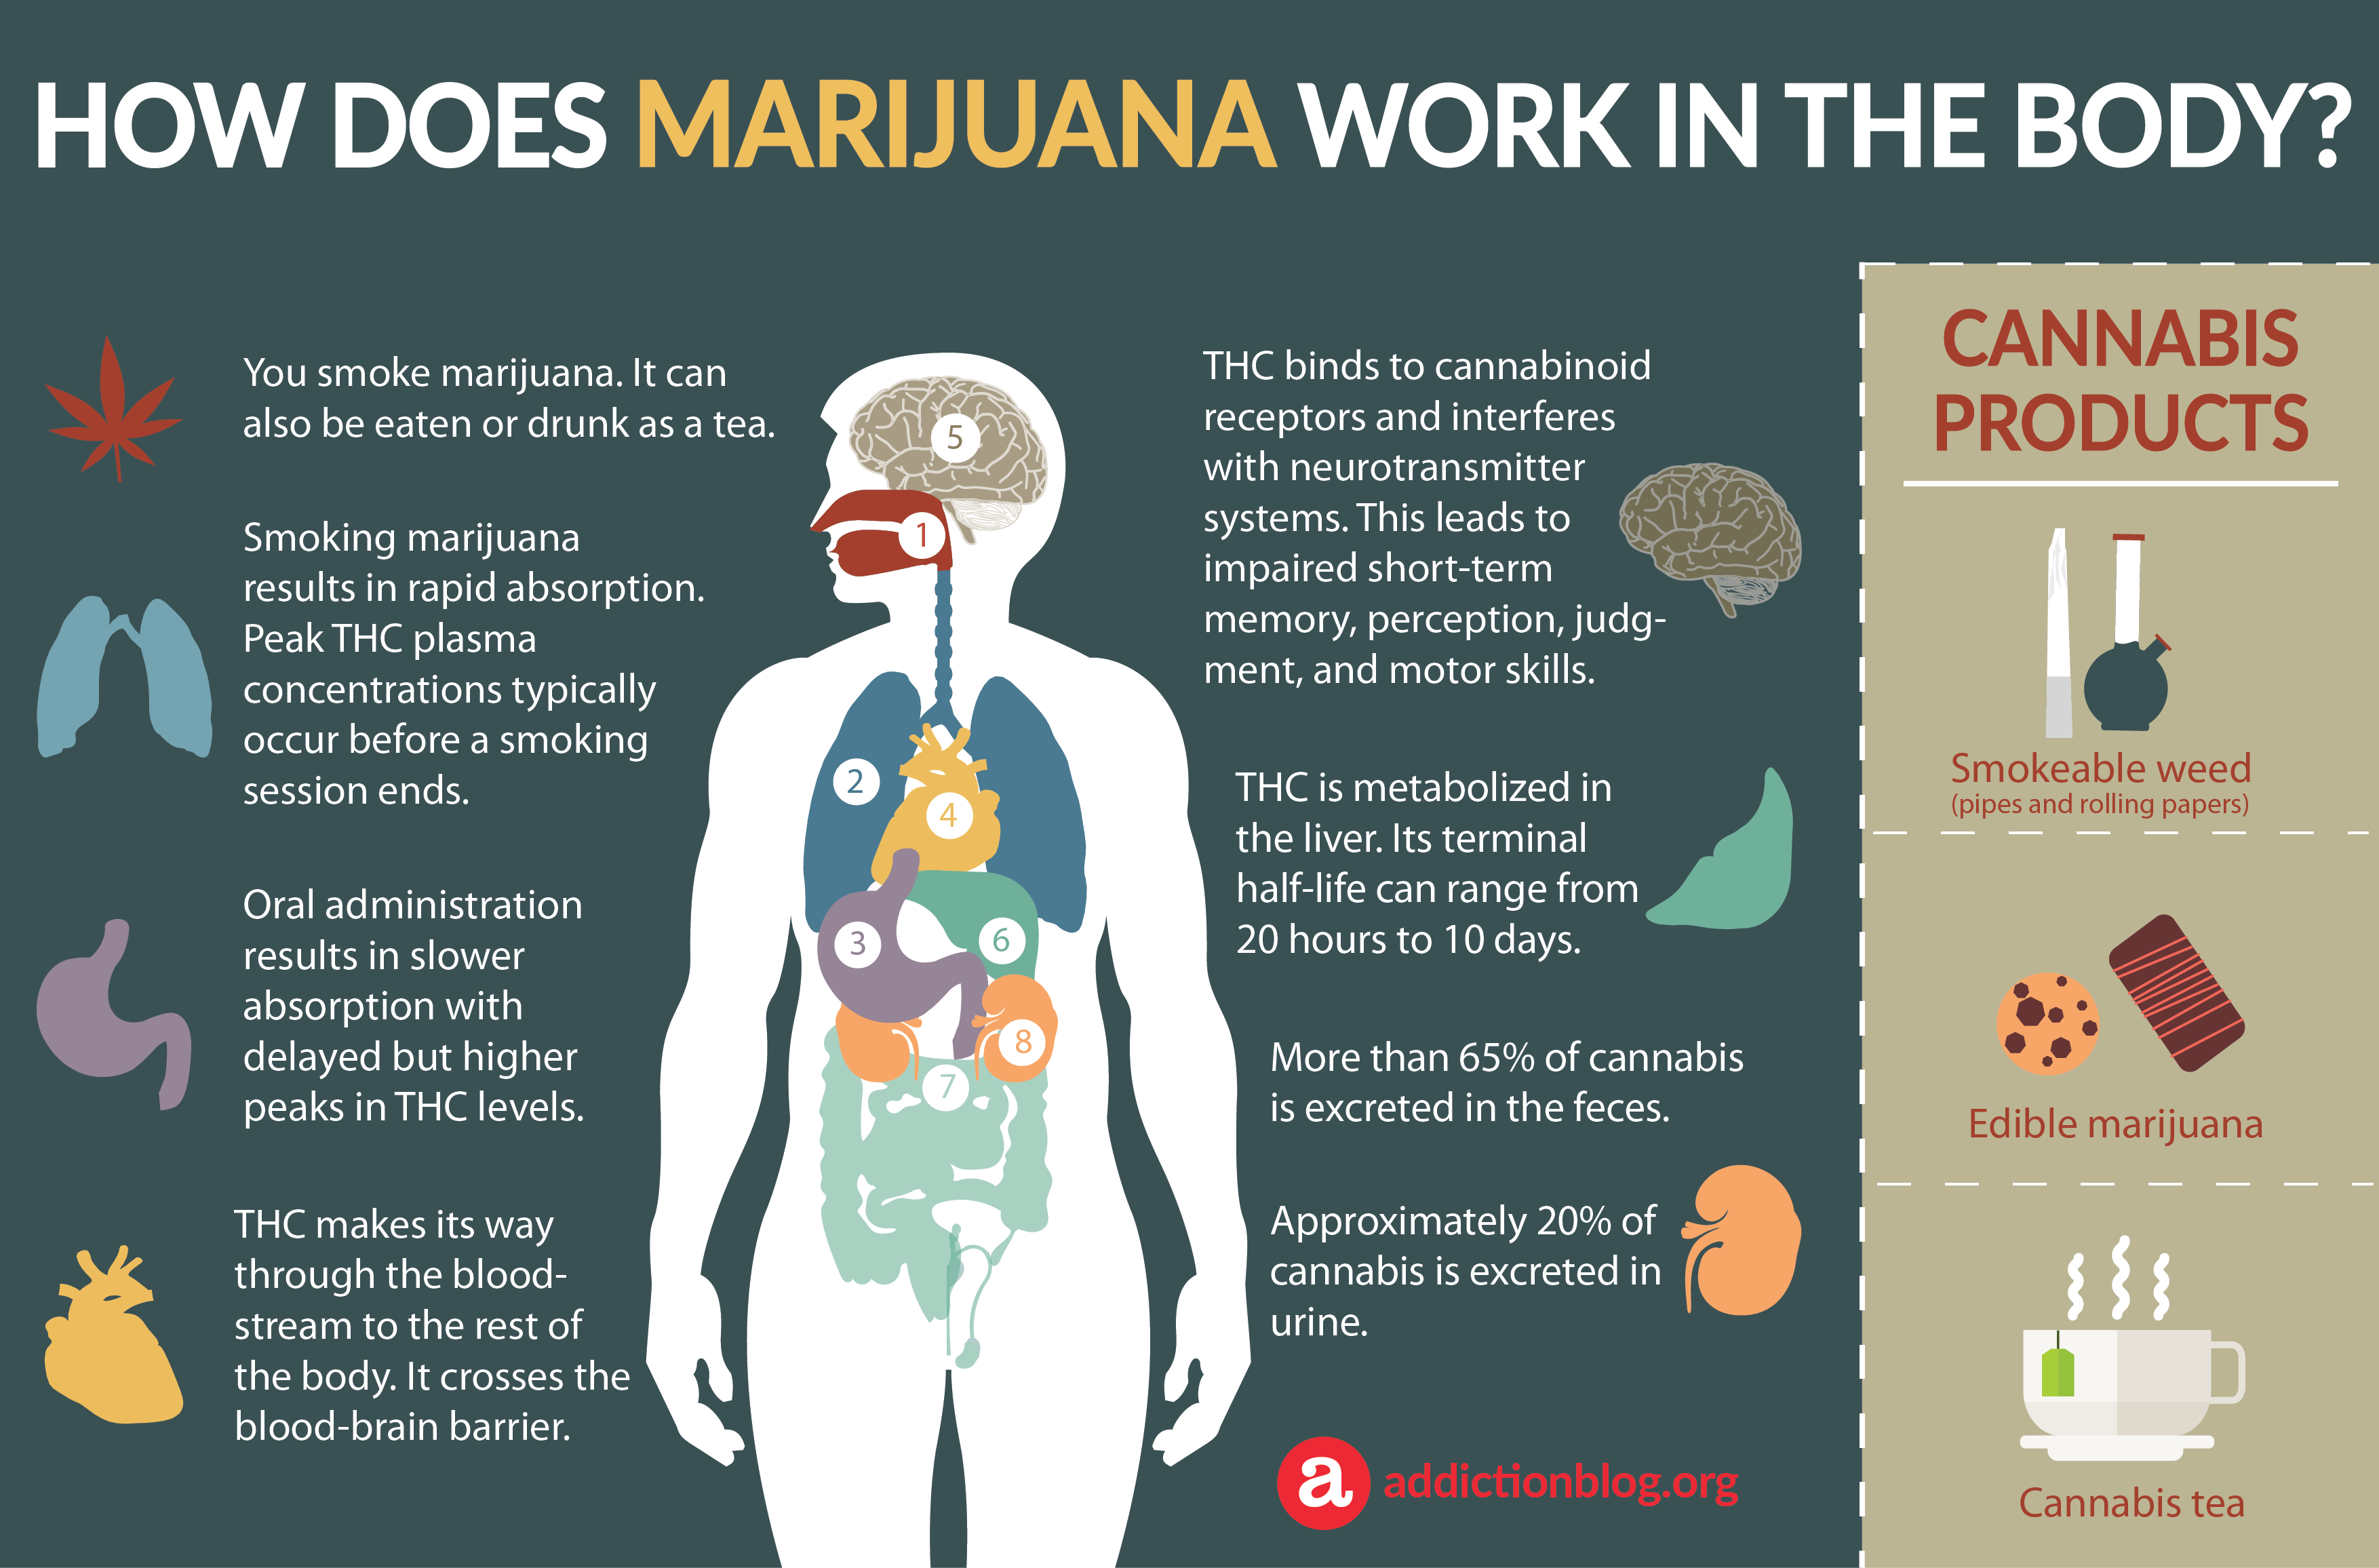 Marijuana Metabolism in the Body: How Marijuana Affects the Brain (INFOGRAPHIC)